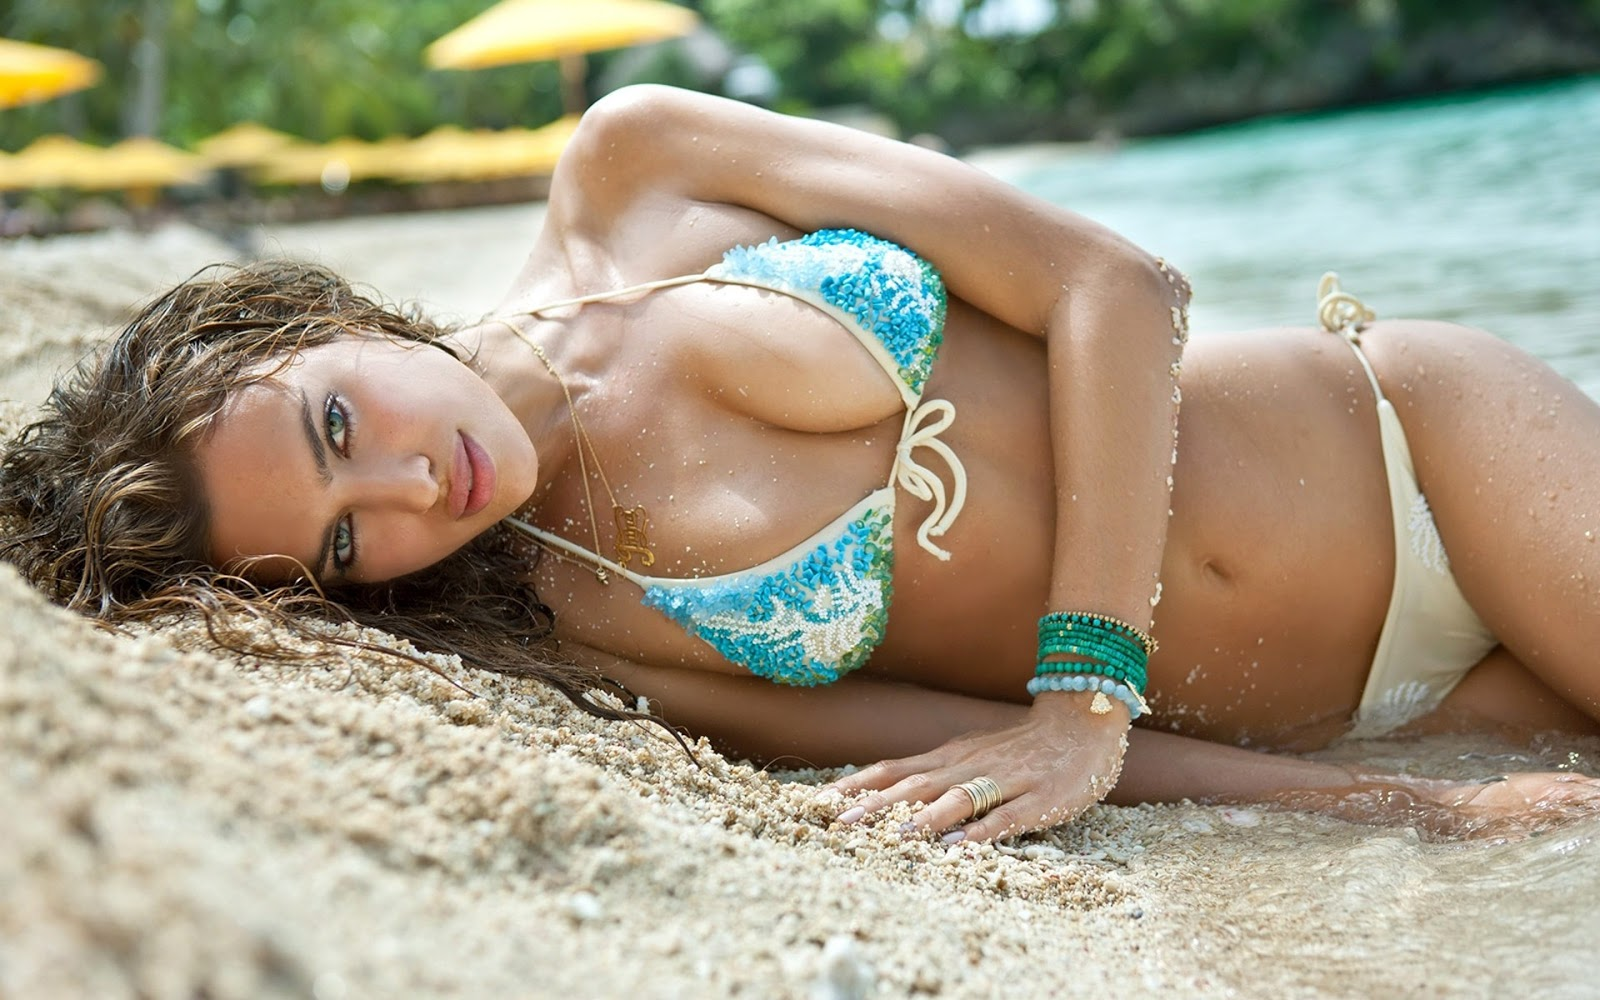 ONE PIECE POSTER ADRIANA LIMA VICTORIA/'S SECRET MODEL WALL ART A1 - A5 SIZES